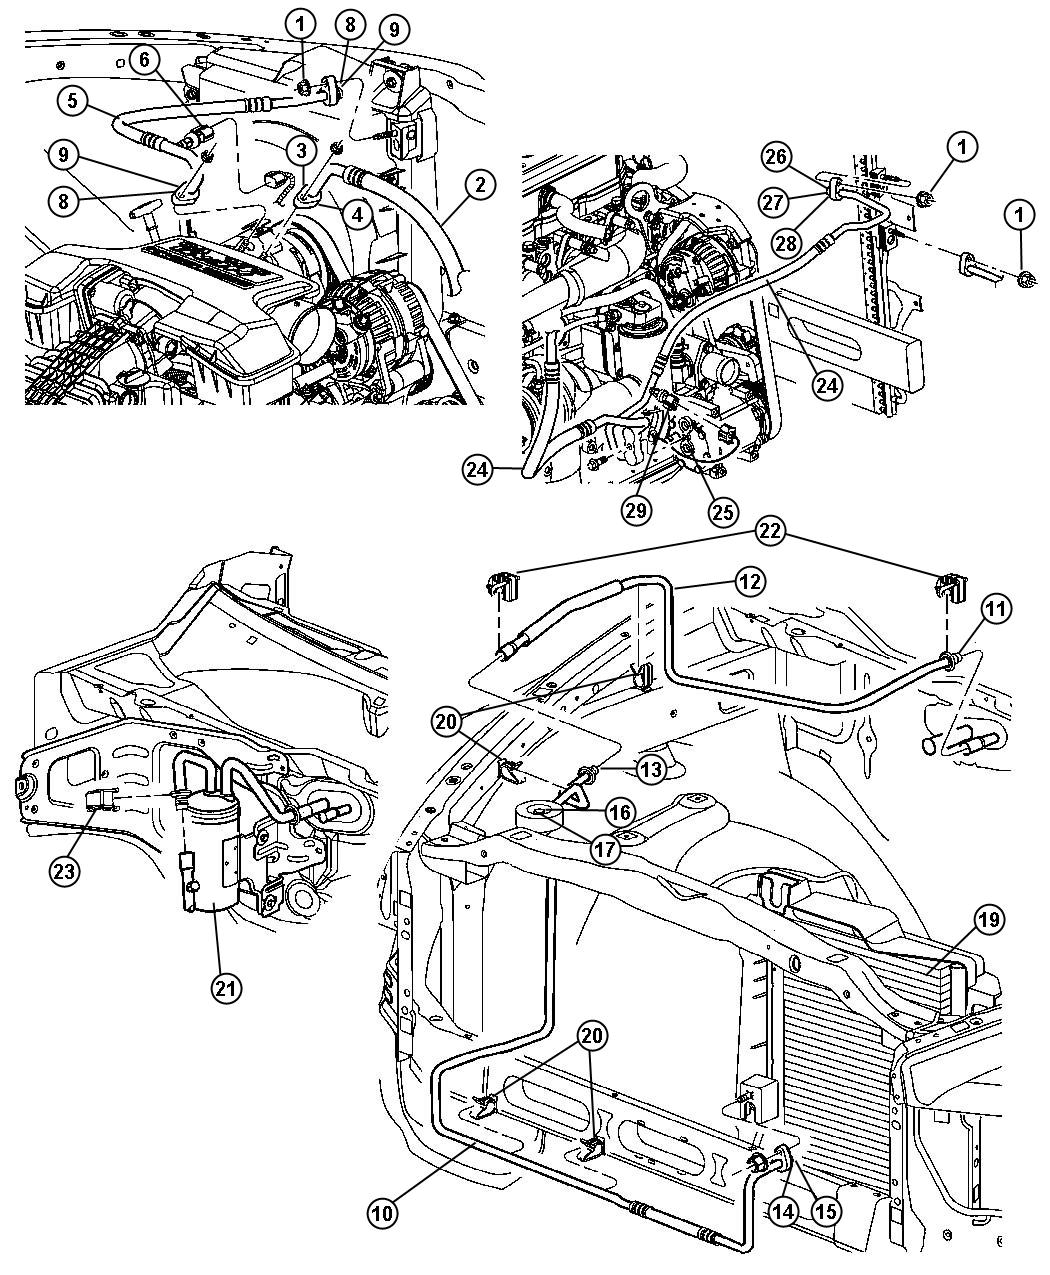 2002 Dodge Dakota Ac System Diagram. Dodge. Wiring Diagram